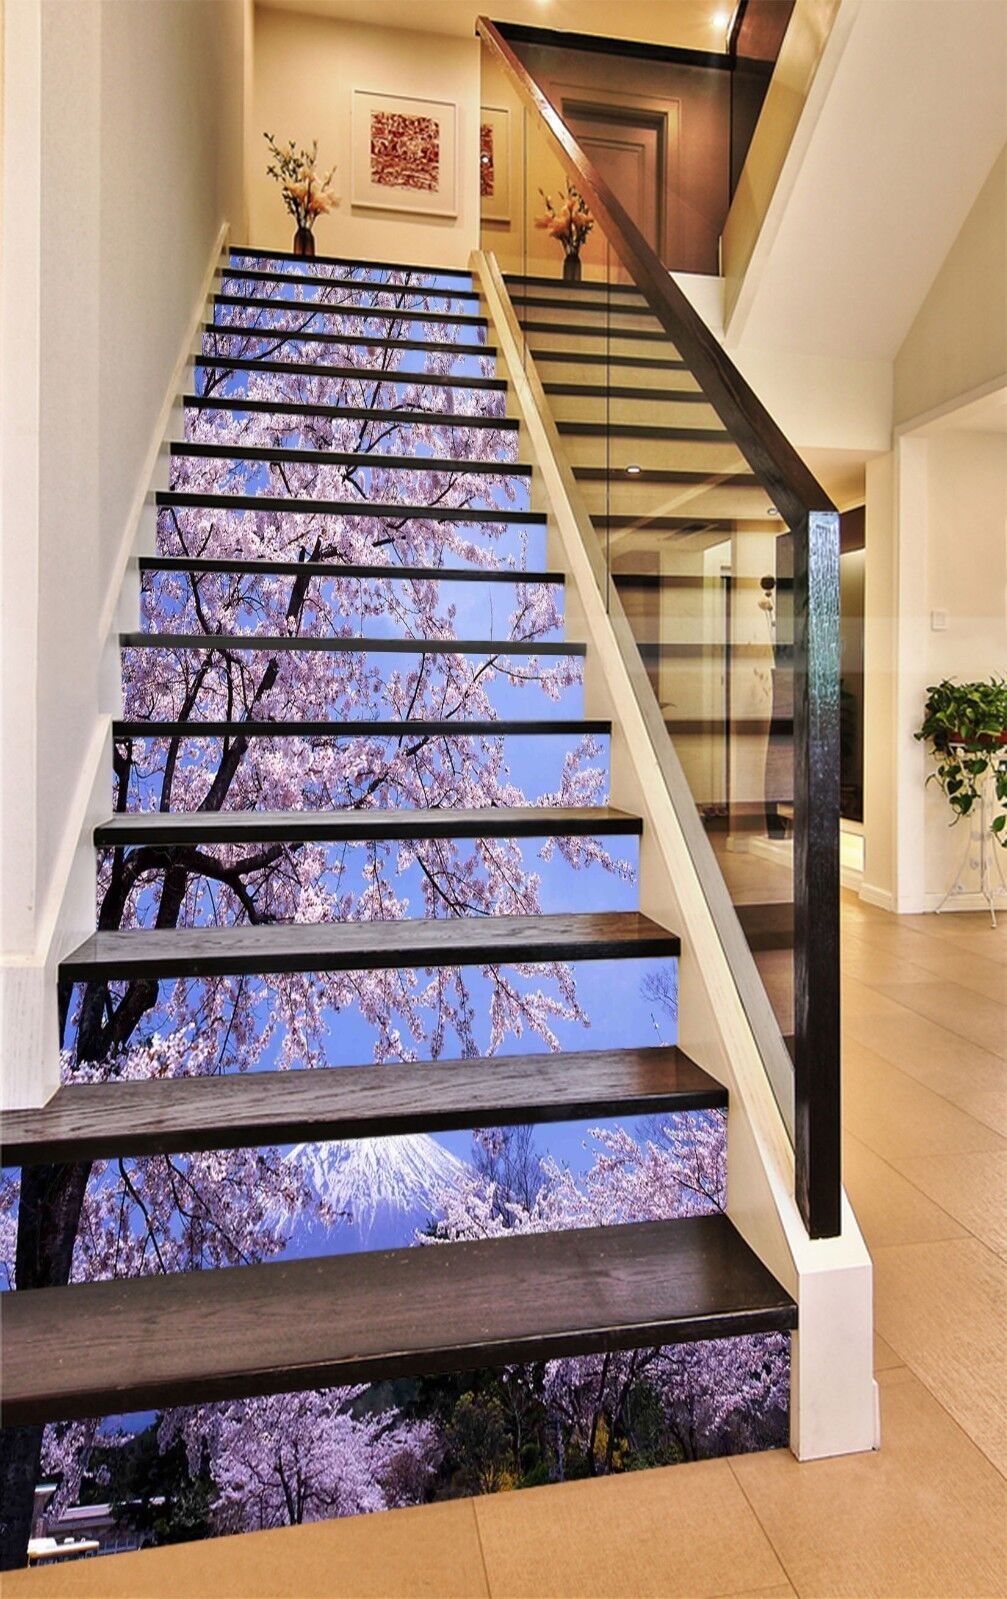 3D Flower tree 357 Stair Risers Decoration Photo Mural Vinyl Decal Wallpaper UK